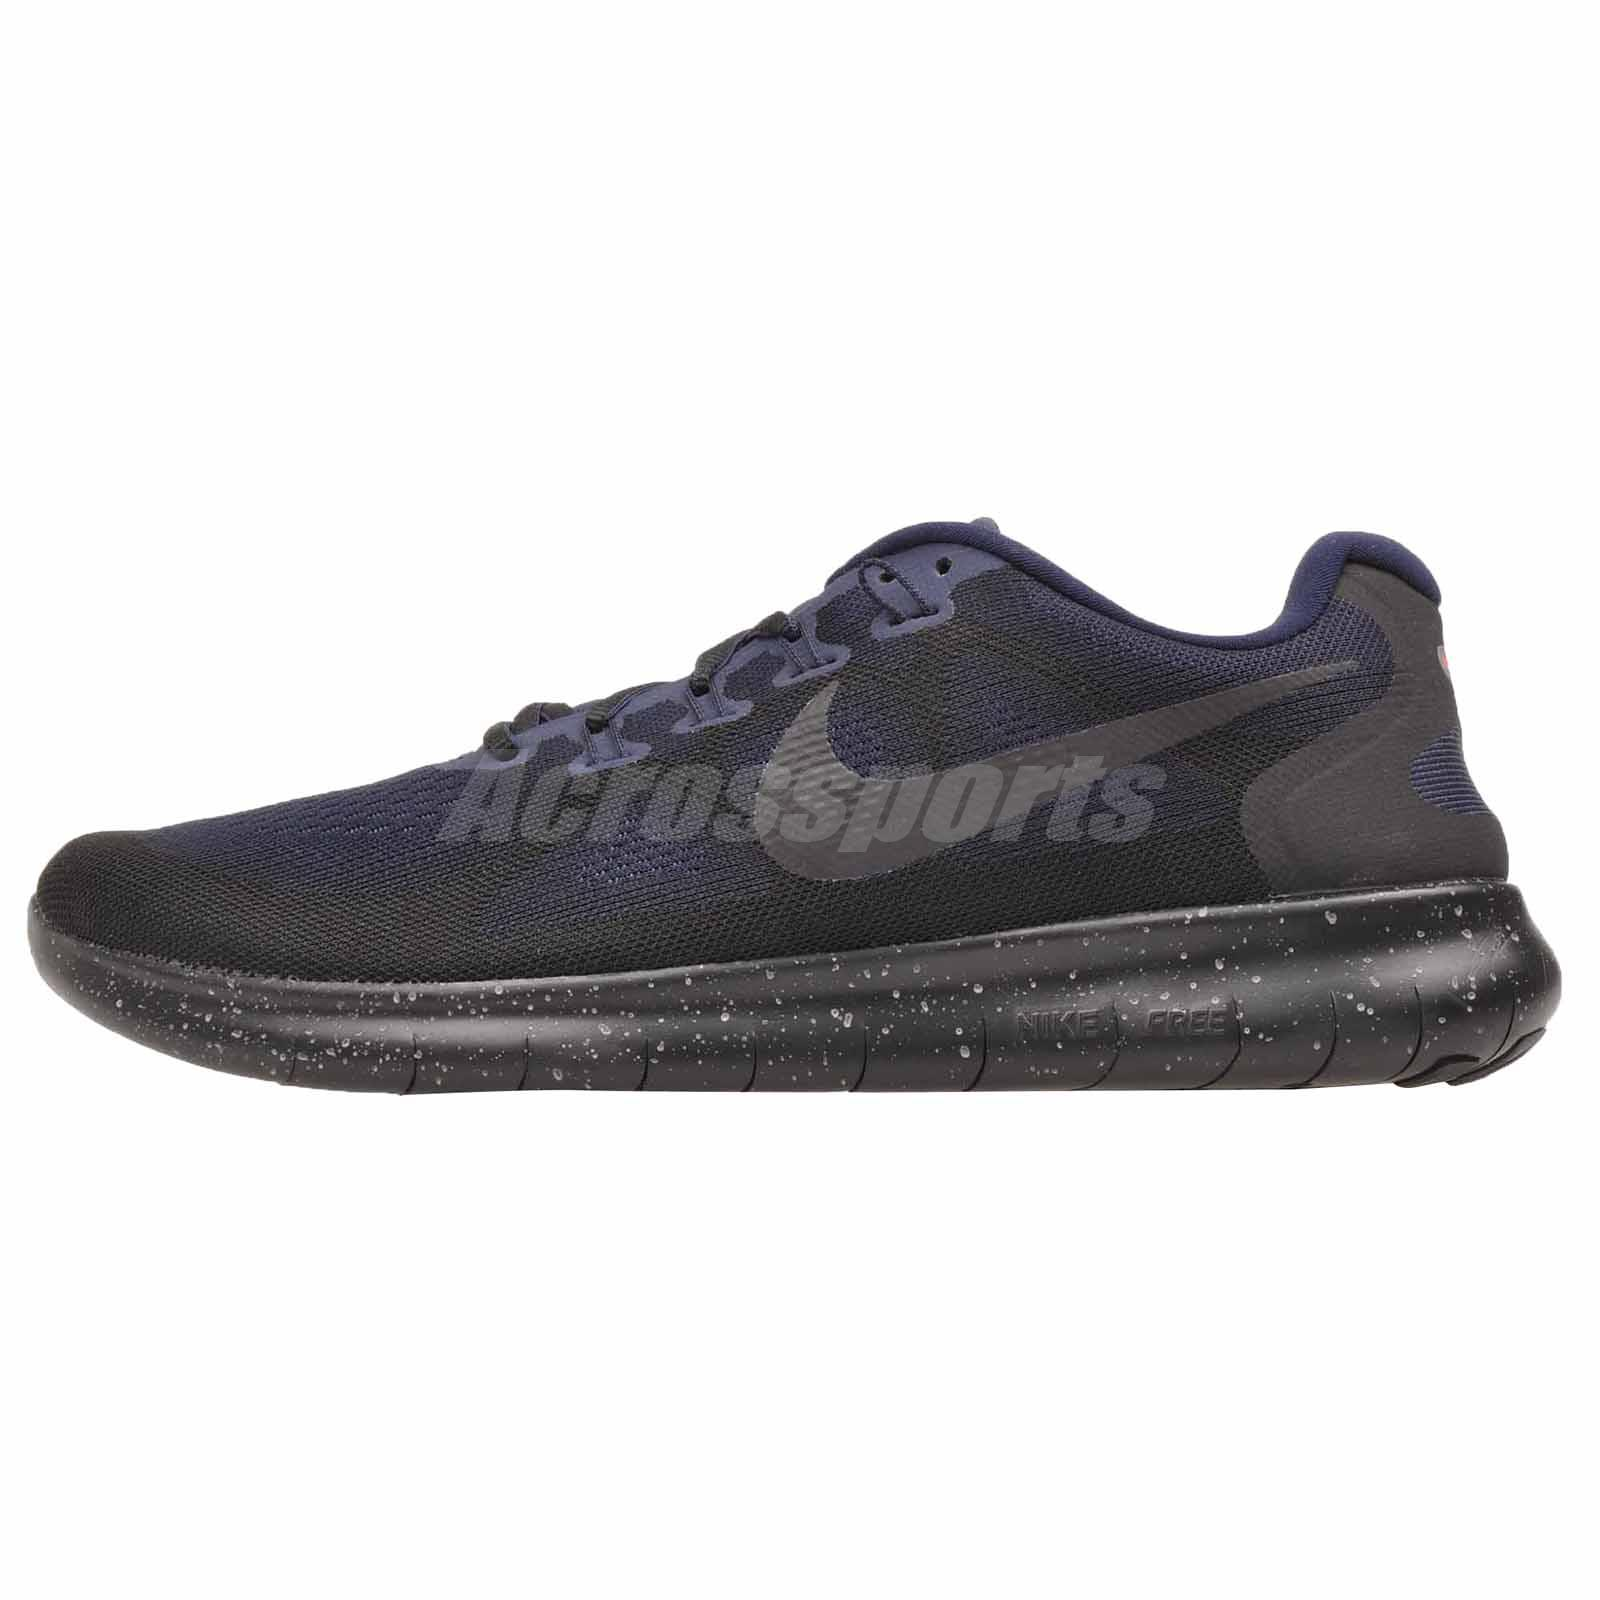 62dd7079c96a Details about Nike Free RN 2017 Shield Running Mens Shoes NWOB Black  AA3760-001